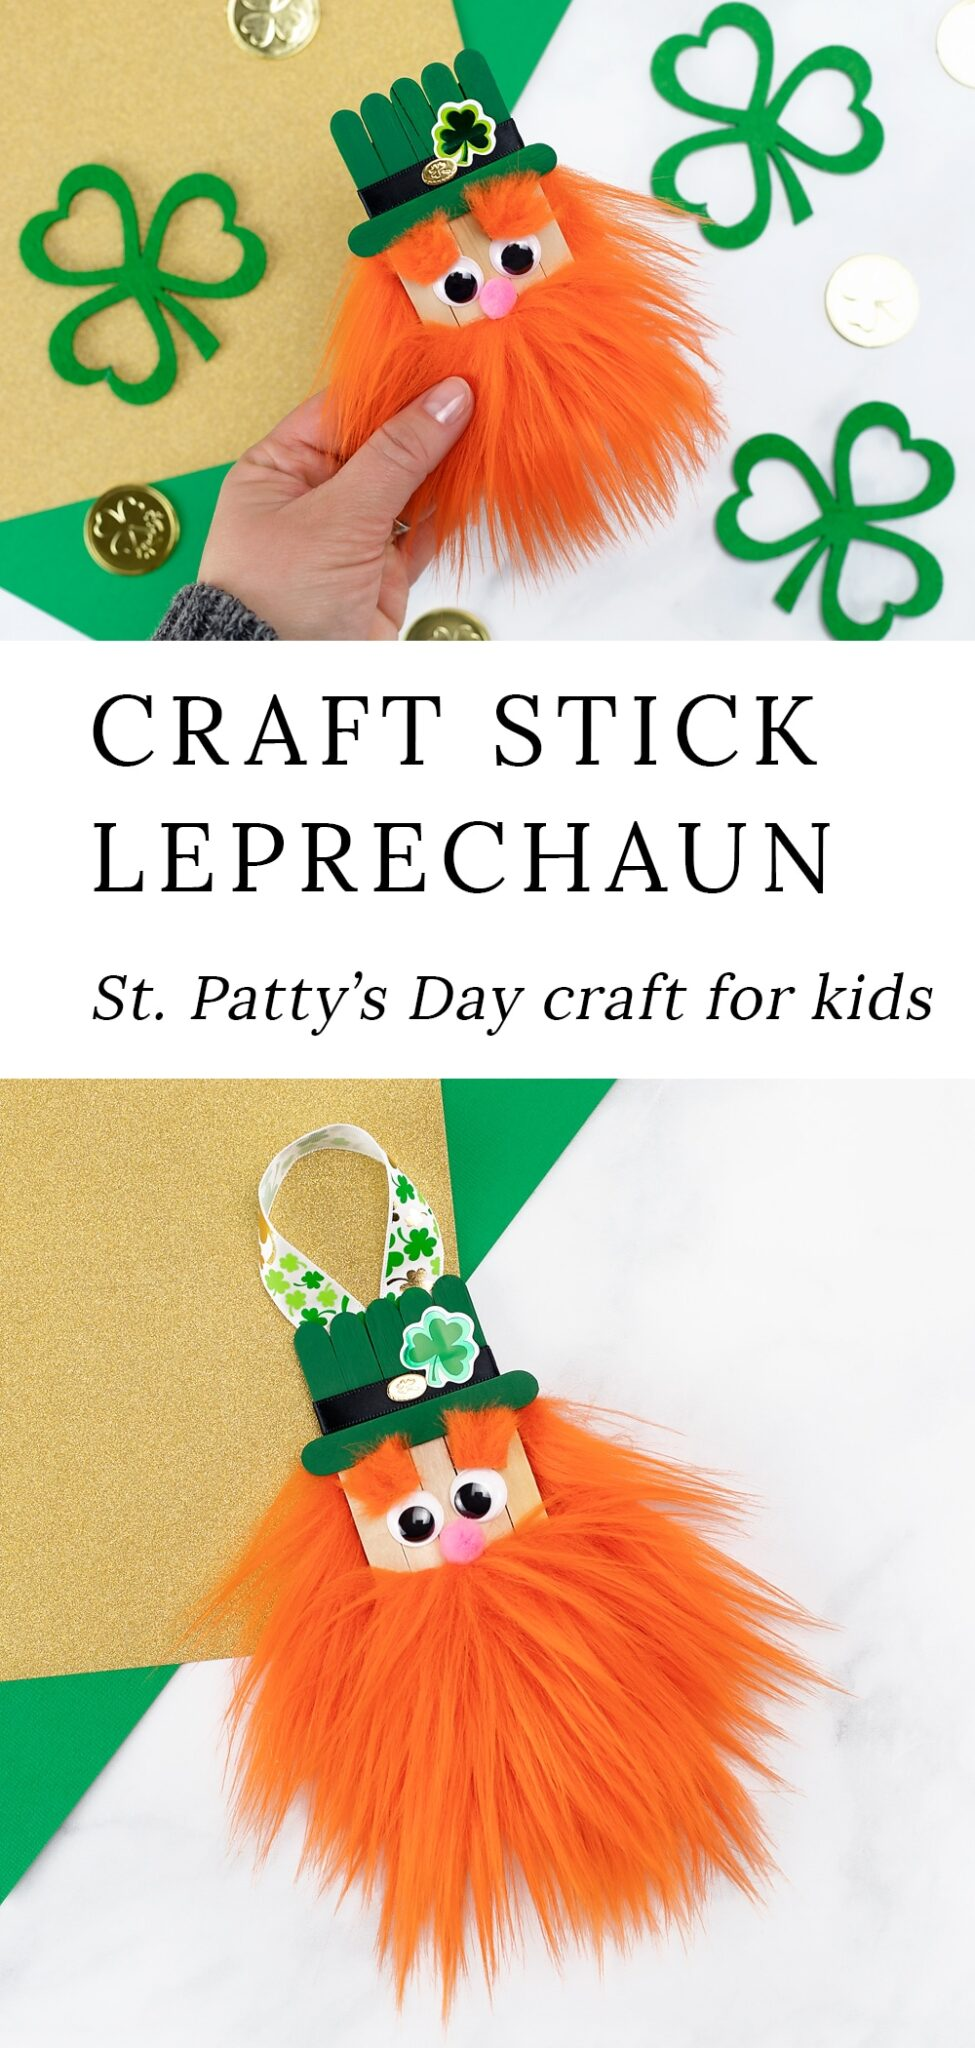 Learn how to make a fun popsicle stick leprechaun craft with our step-by-step directions and video tutorial. It's the best St. Patrick's Day craft for kids! #leprechaun #craft via @firefliesandmudpies